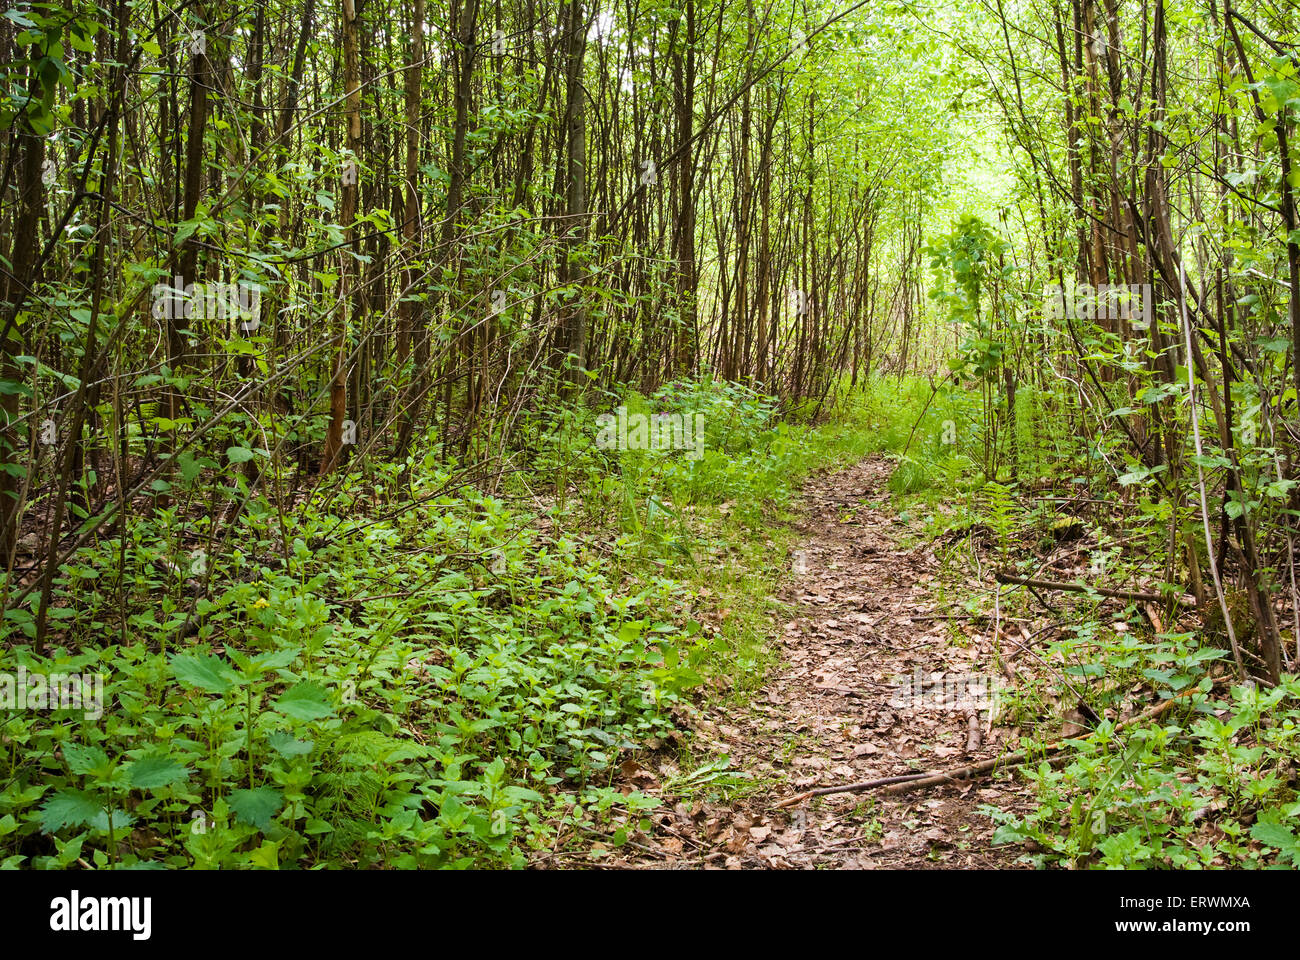 Pathway Through Dense Forest In Stock Photos & Pathway